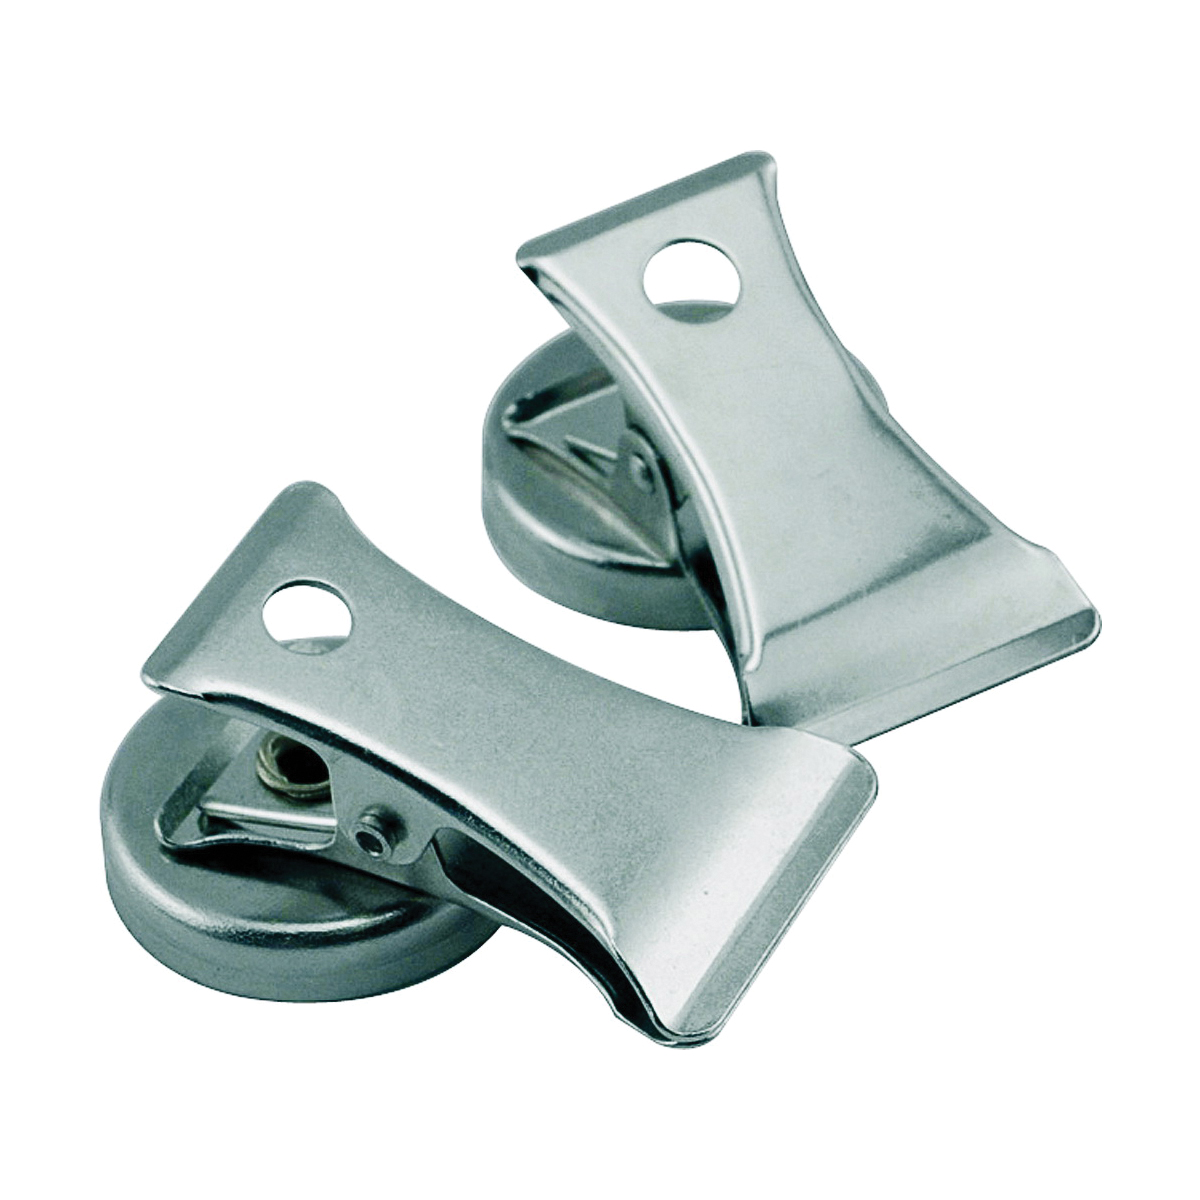 Picture of Magnet Source 07219 Magnetic Clips, 2, Pack